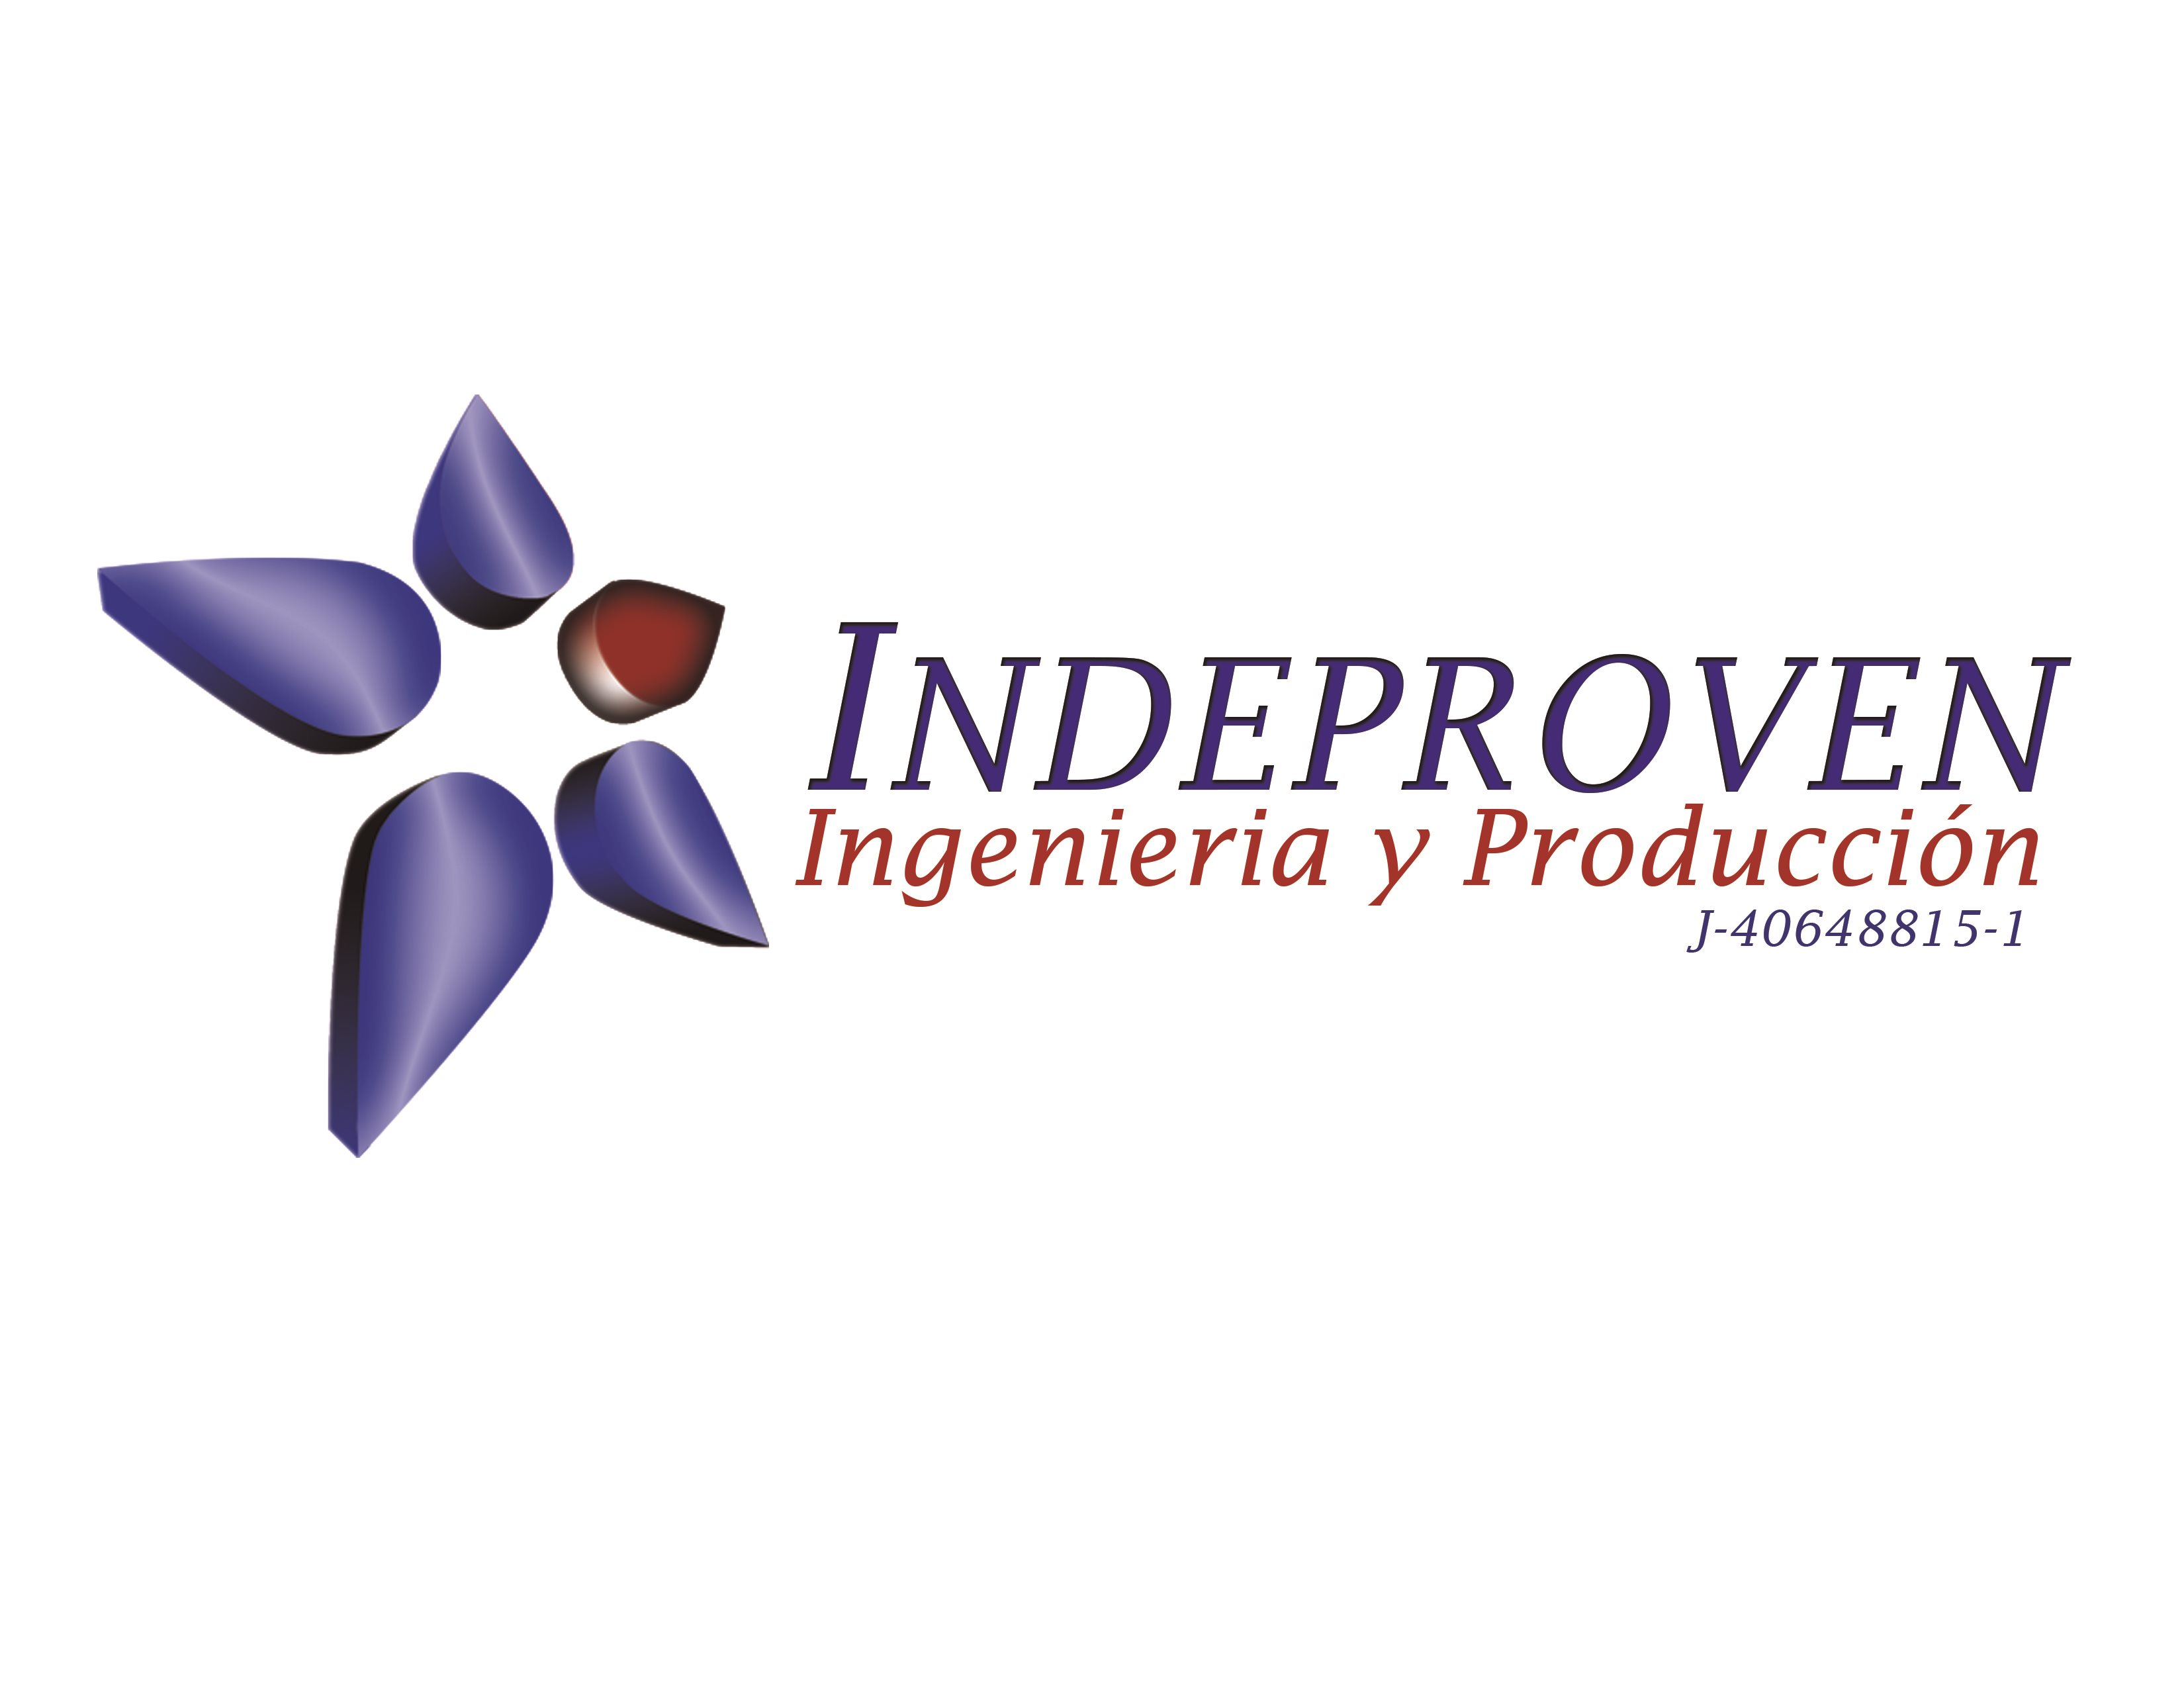 INDEPROVEN